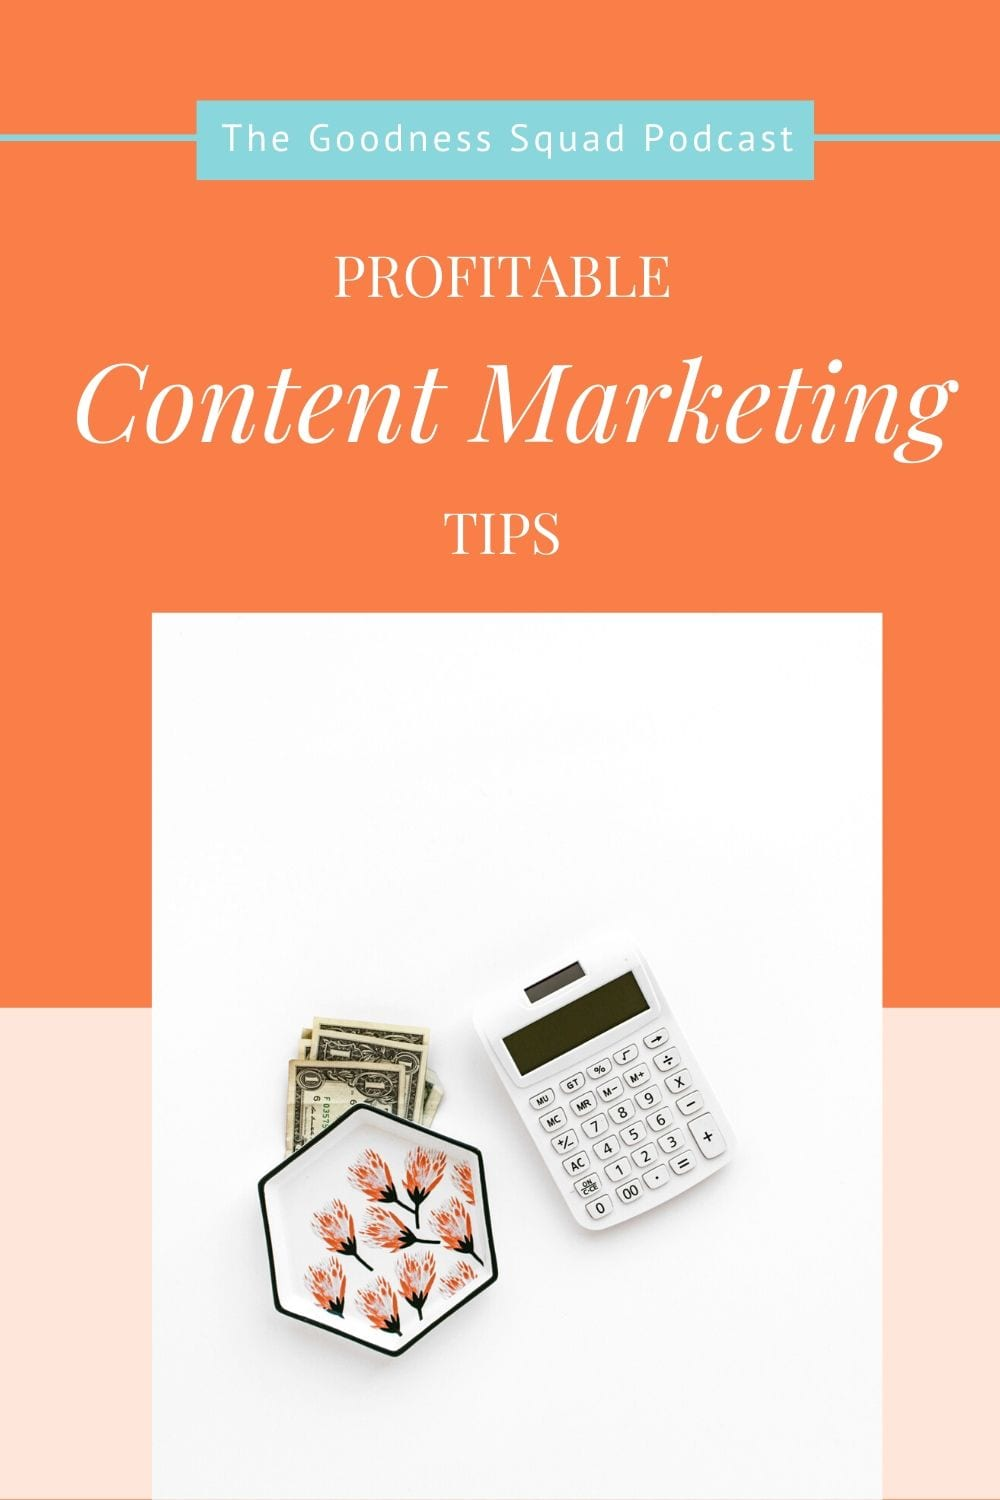 08_How to earn money as a content marketer - $200K in 2 years, in fact